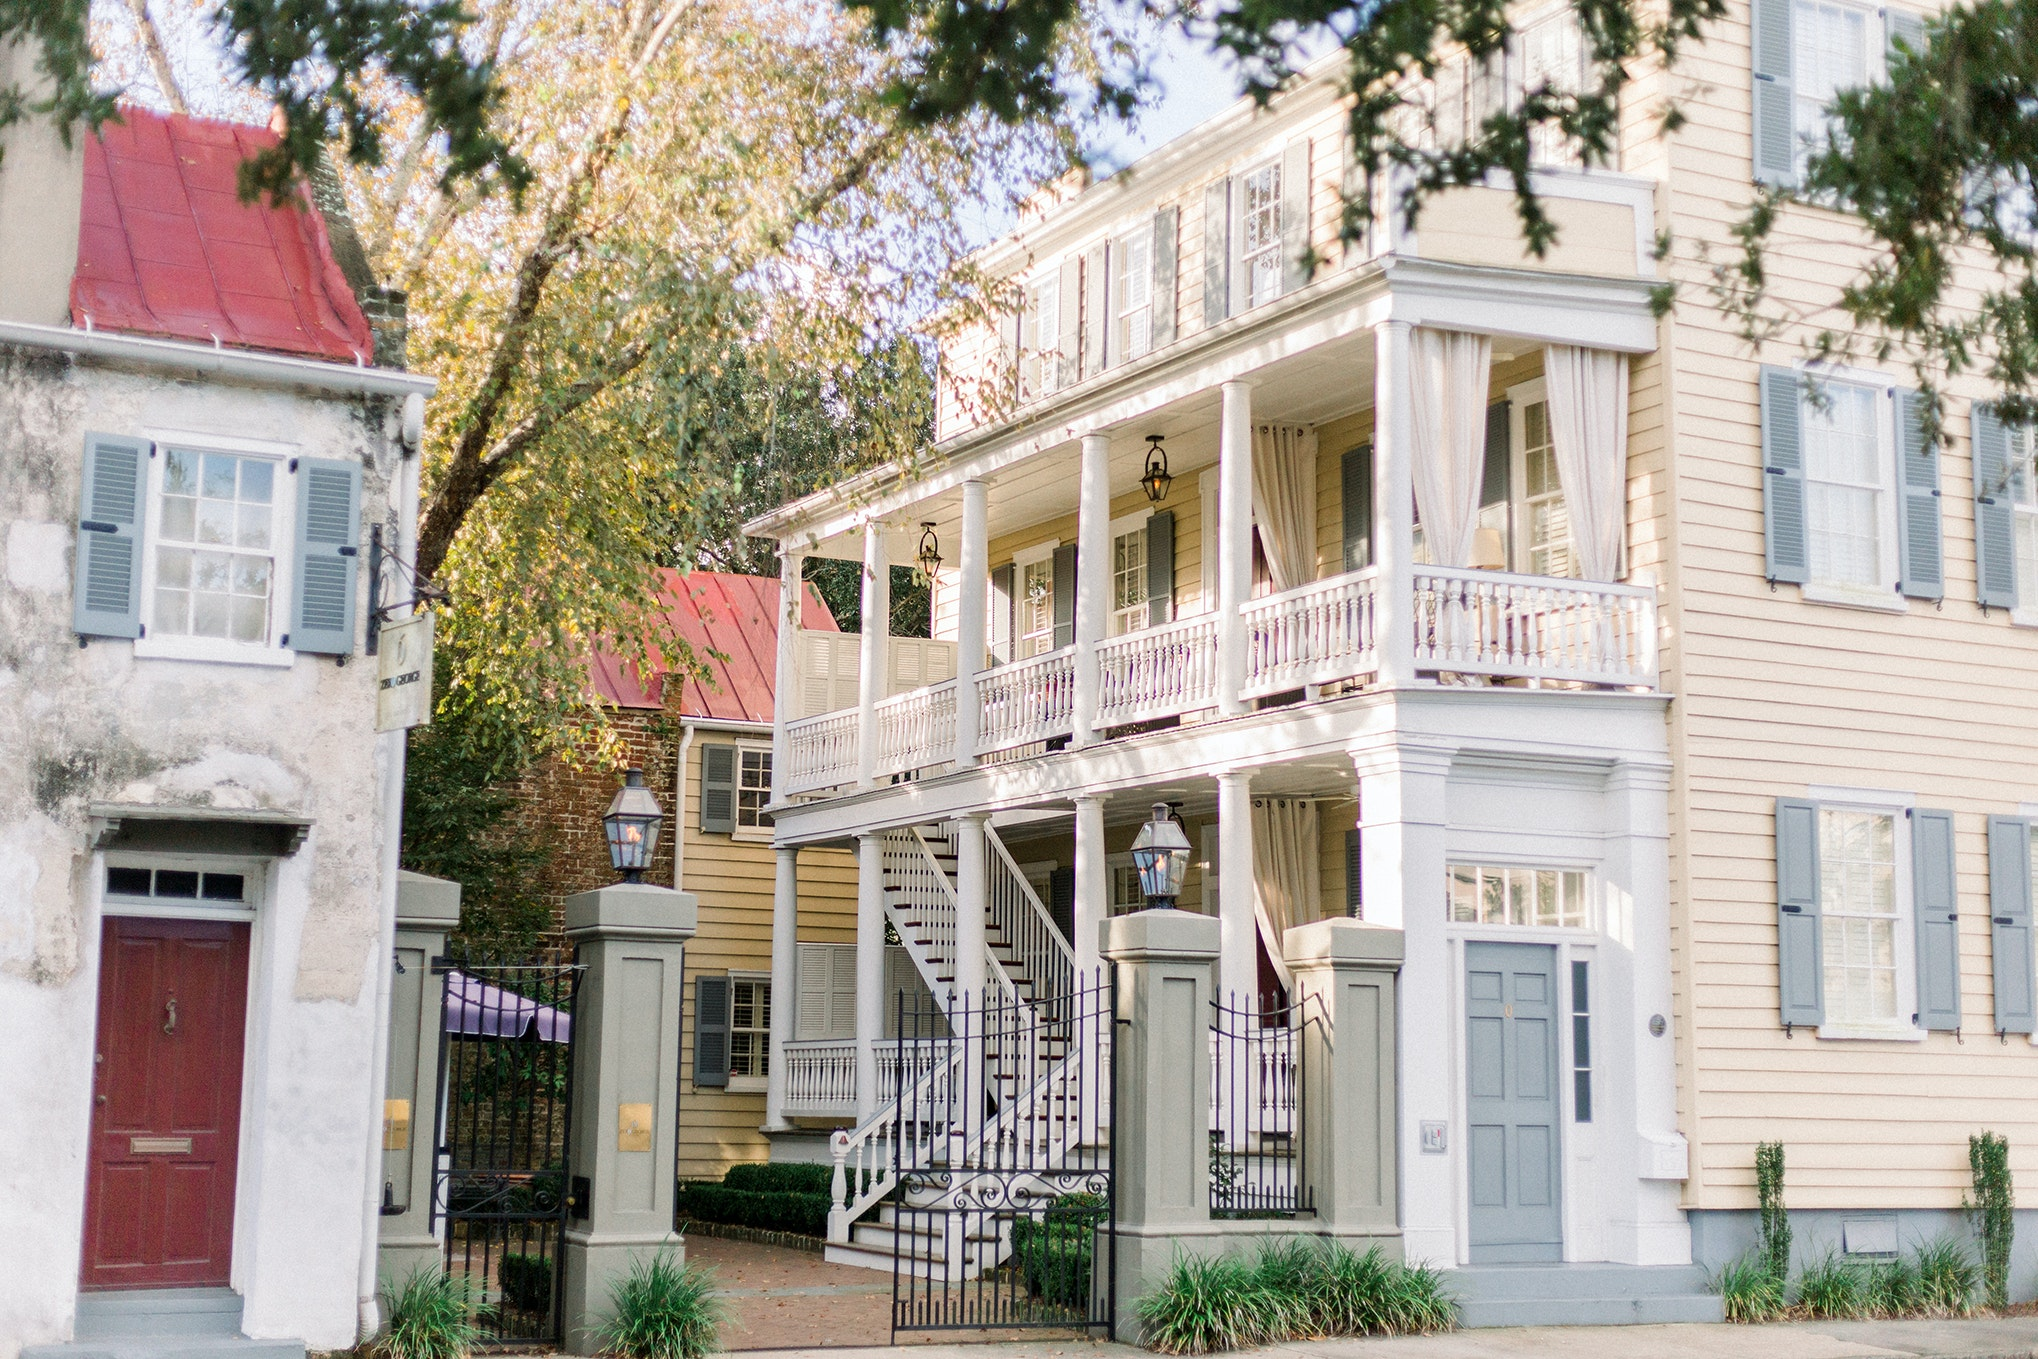 Zero George, a clutch of historic houses converted into a stylish inn, is on the quiet streets of Ansonborough.